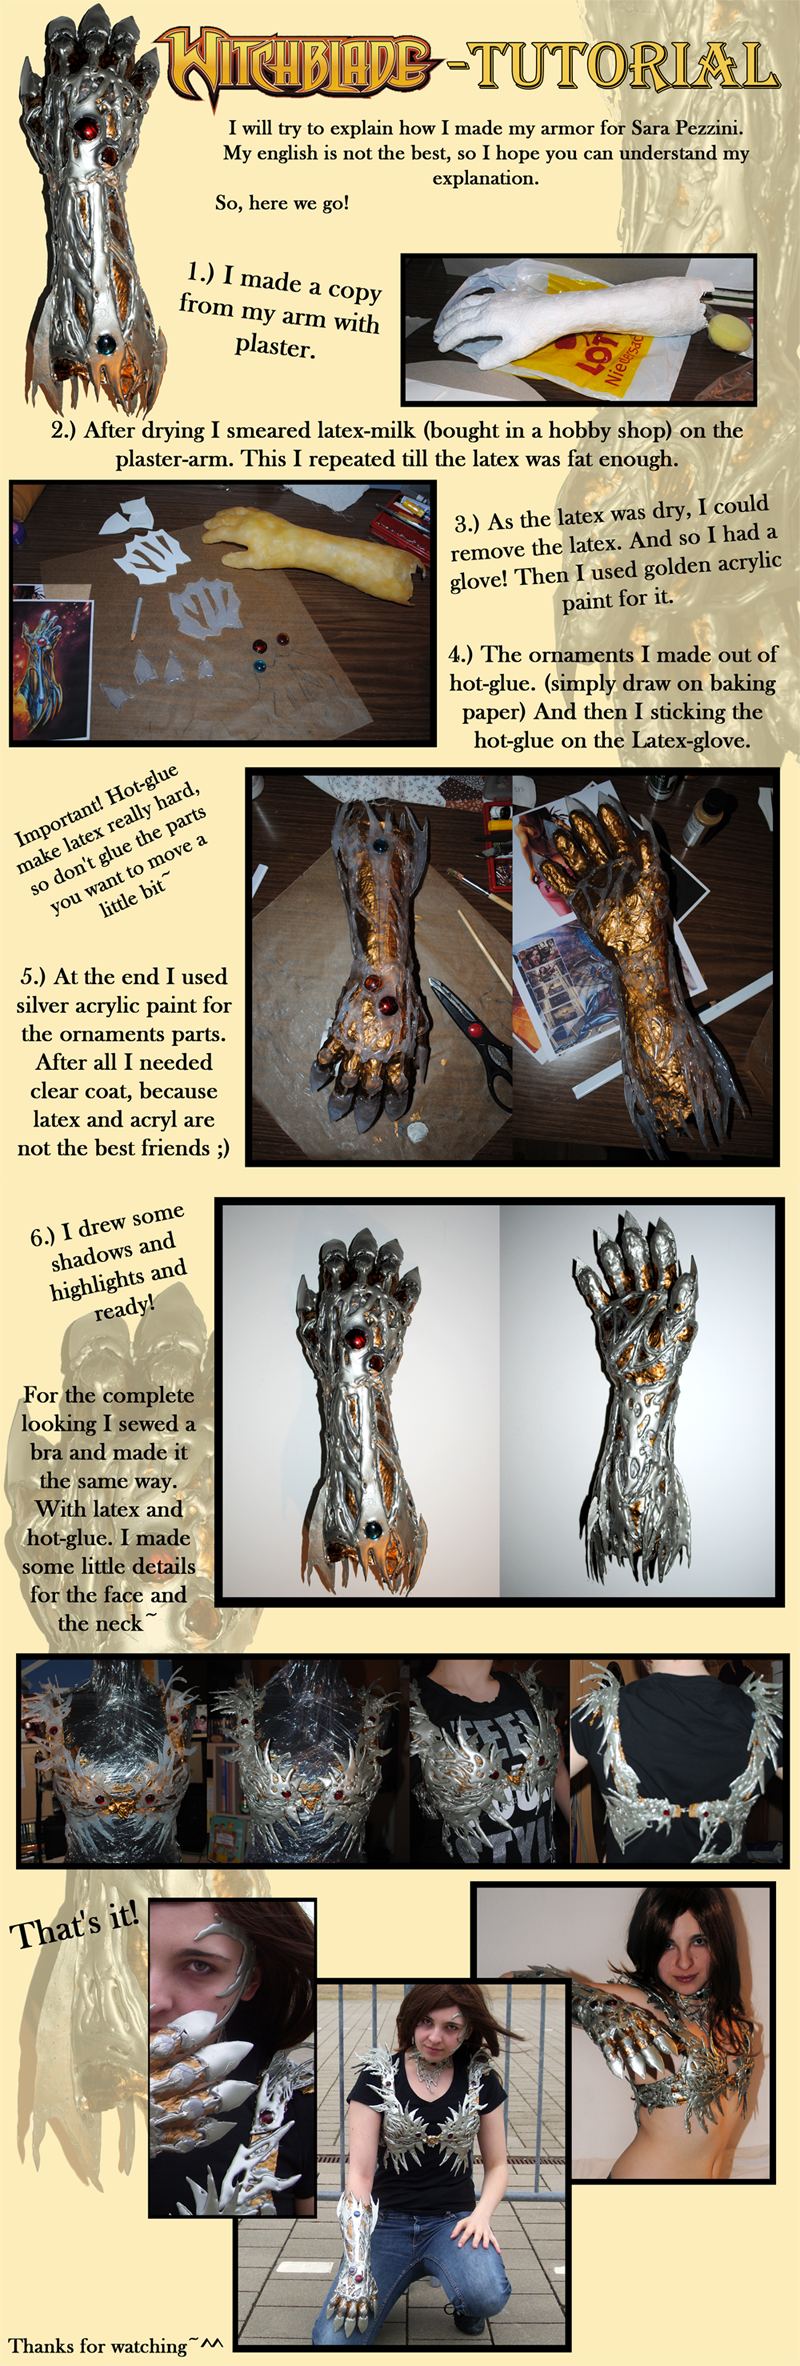 Tutorial: The Witchblade